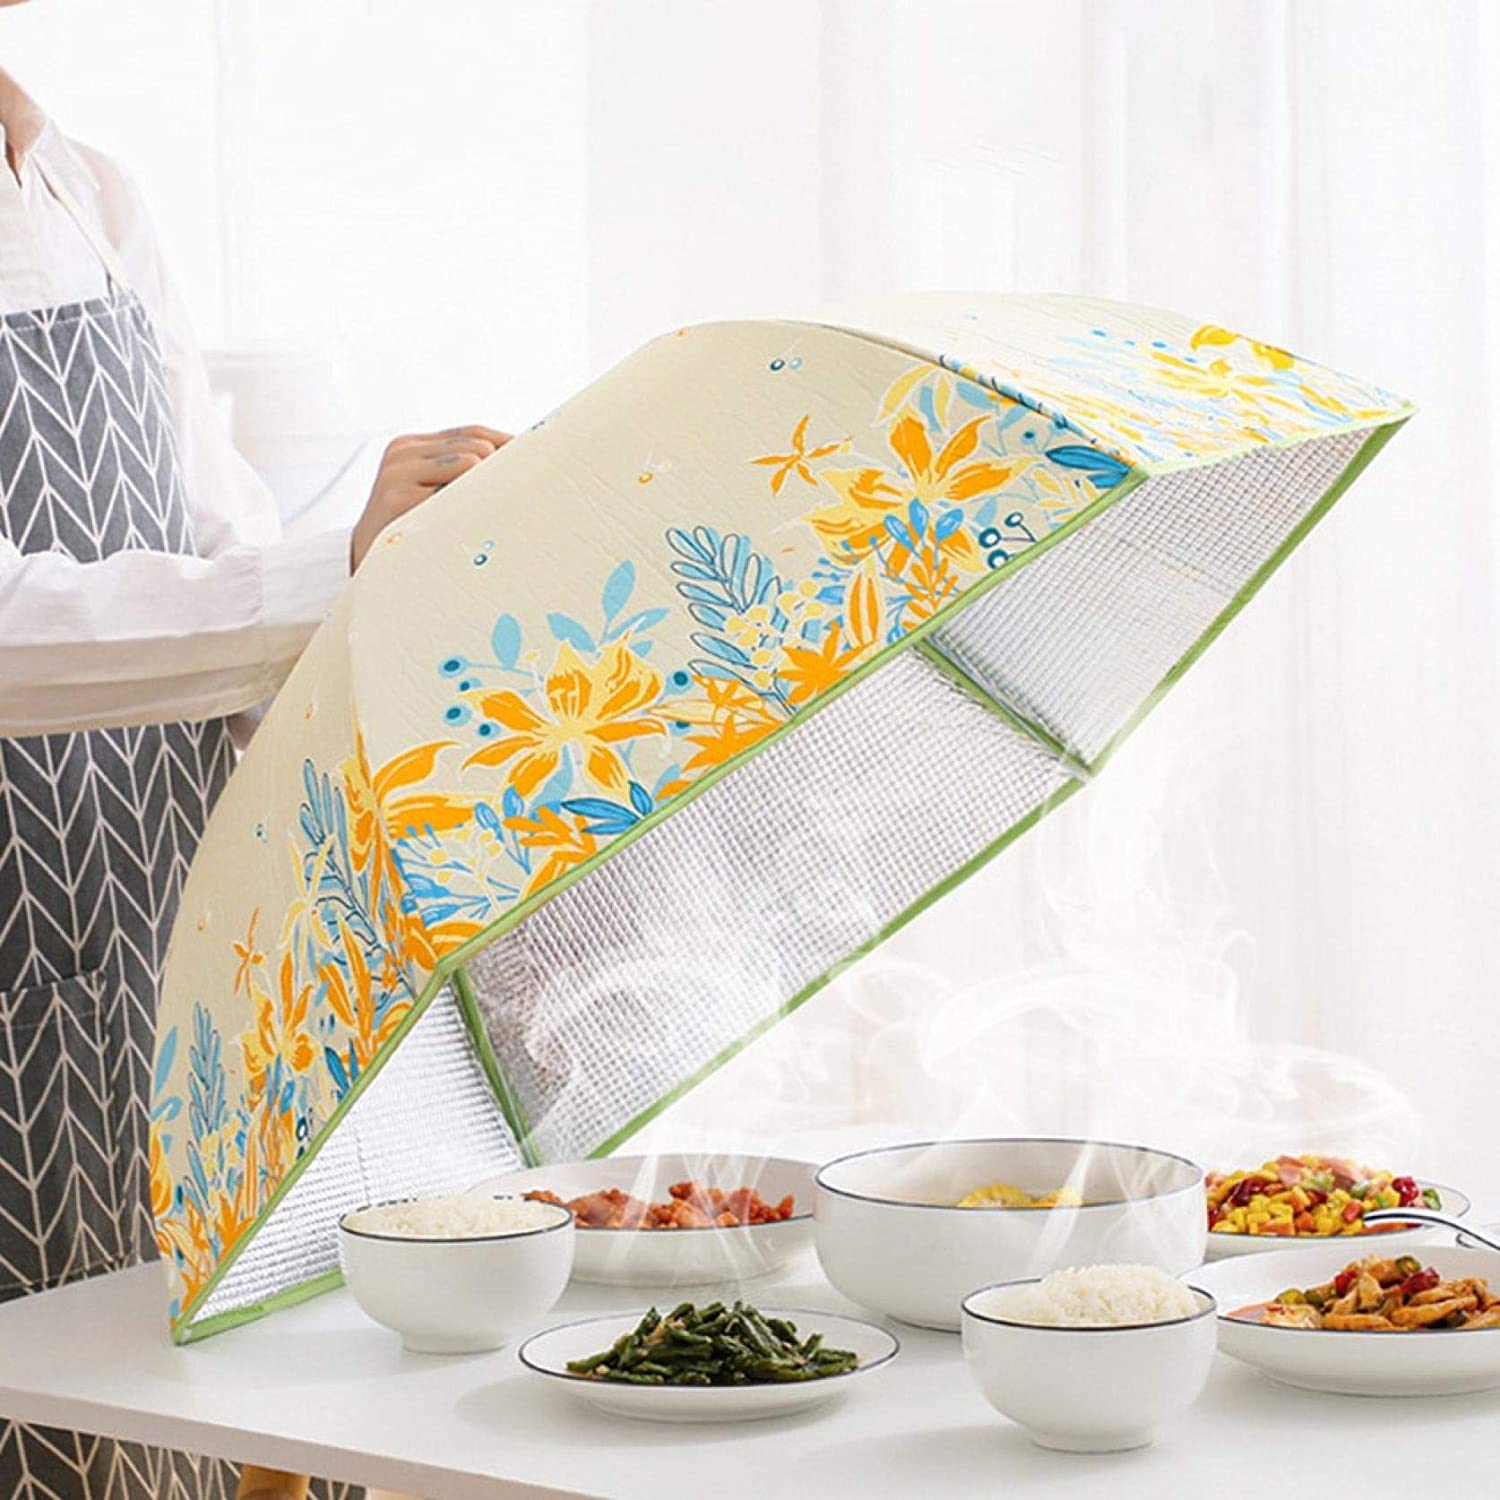 Food Dust Cover,Heat Preservation Cover,Kitchen Food Umbrella Cover,Picnic Party Fly Mosquito Mesh Net Tent